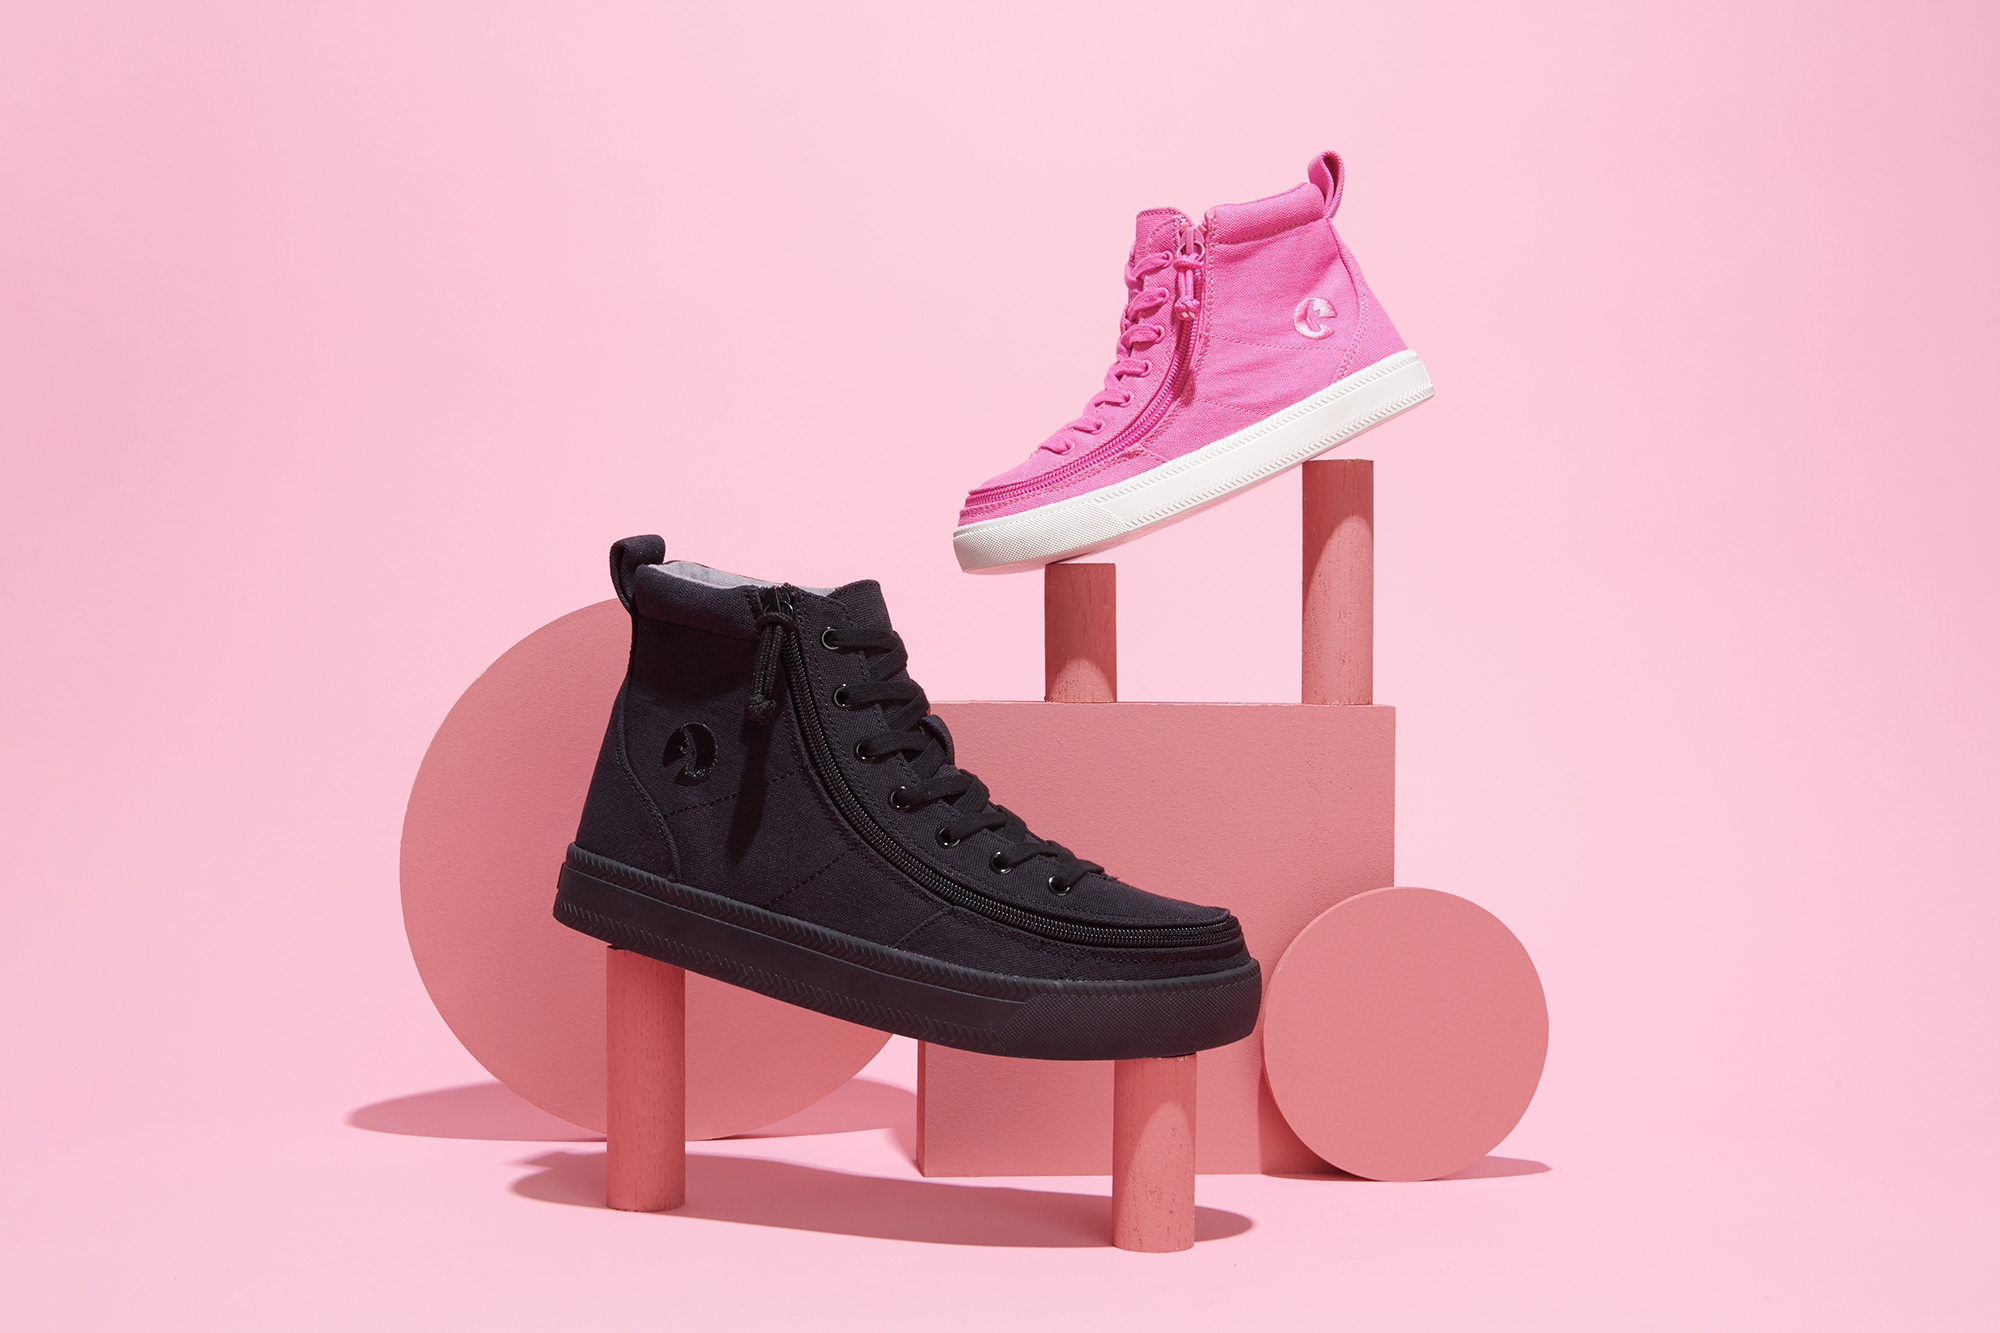 Zappos is now selling single shoes and mixed size pairs